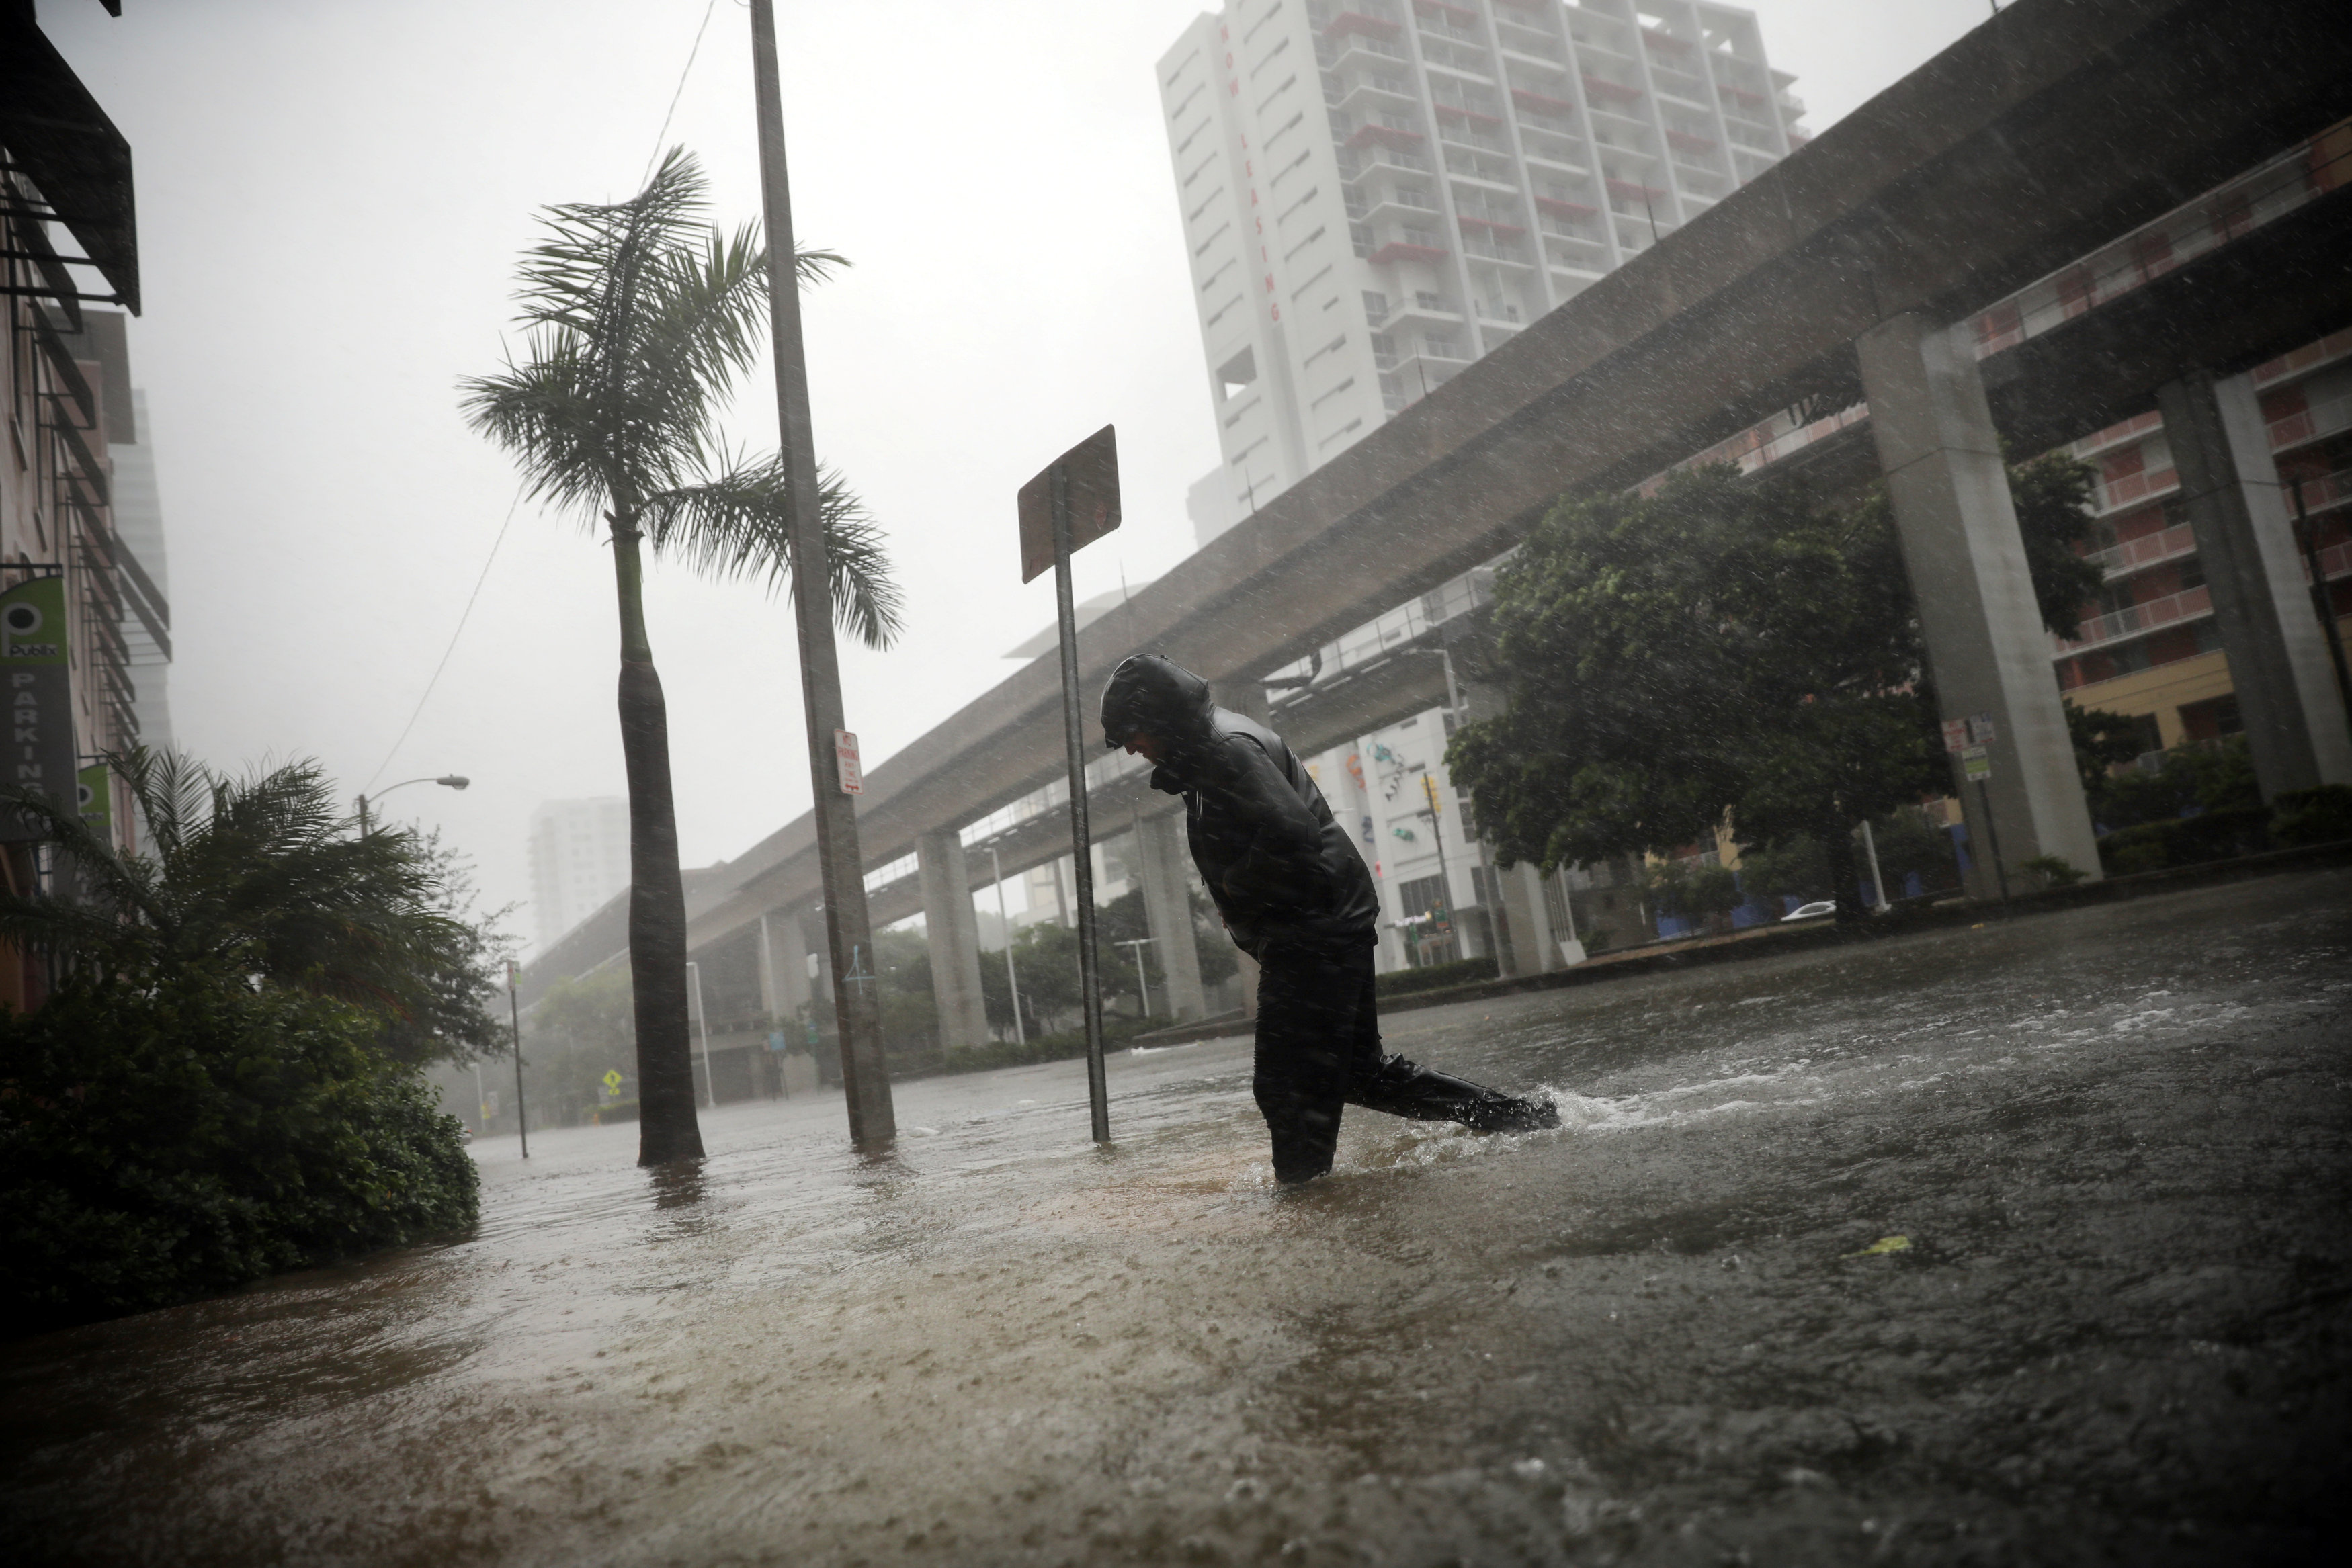 A local resident walks across a flooded street in downtown Miami as Hurricane Irma arrives at south Florida on Sept. 10, 2017. (REUTERS/Carlos Barria)